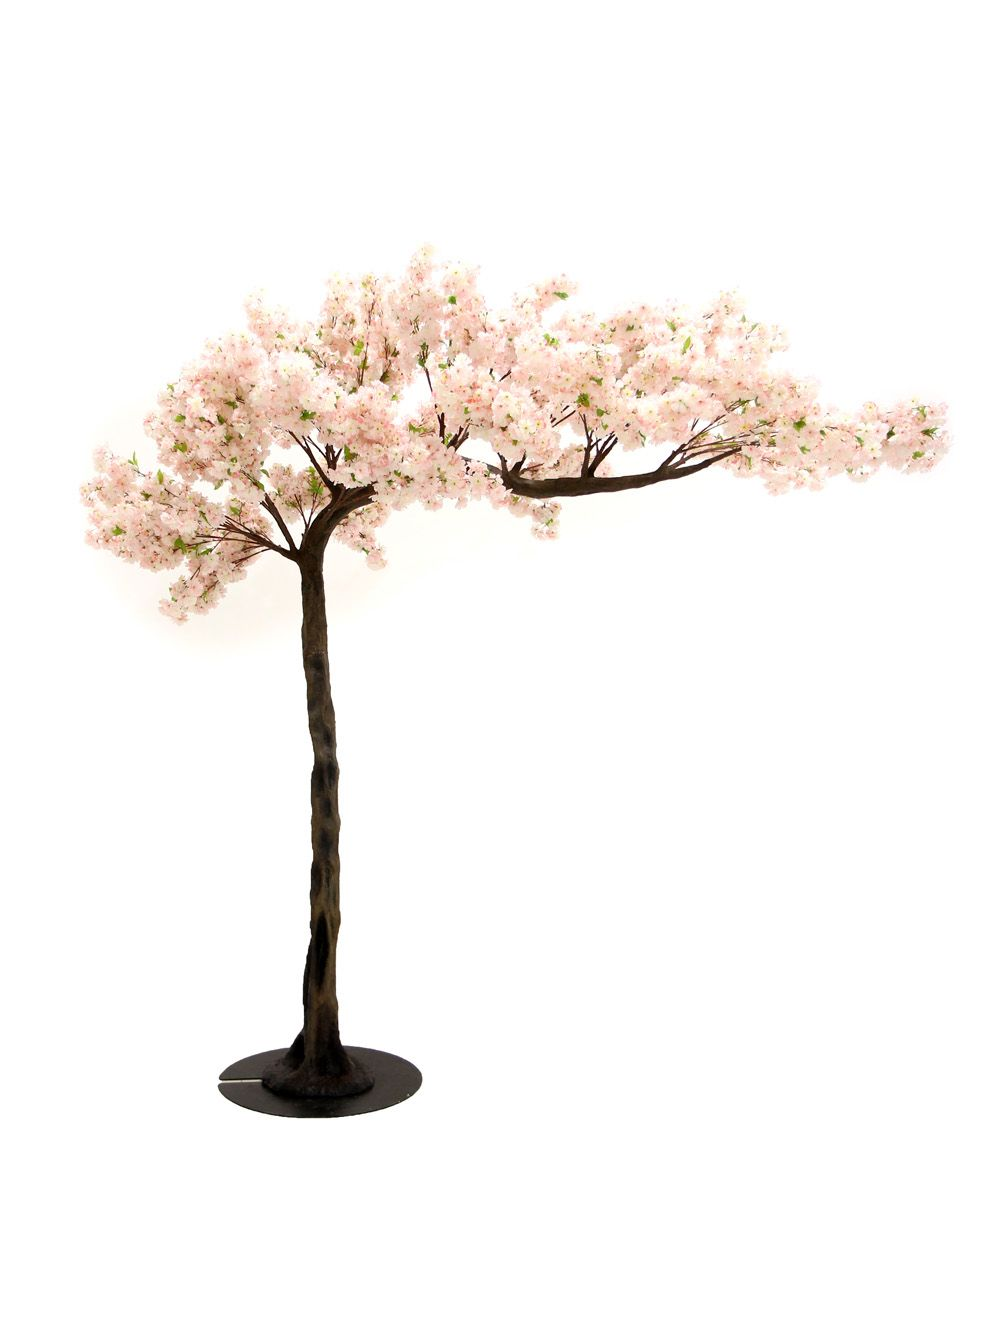 Pink Cherry Blossom Canopy Tree 3 3m Event Prop Hire In 2020 Tree Canopy Cherry Blossom Wedding Cherry Blossom Tree